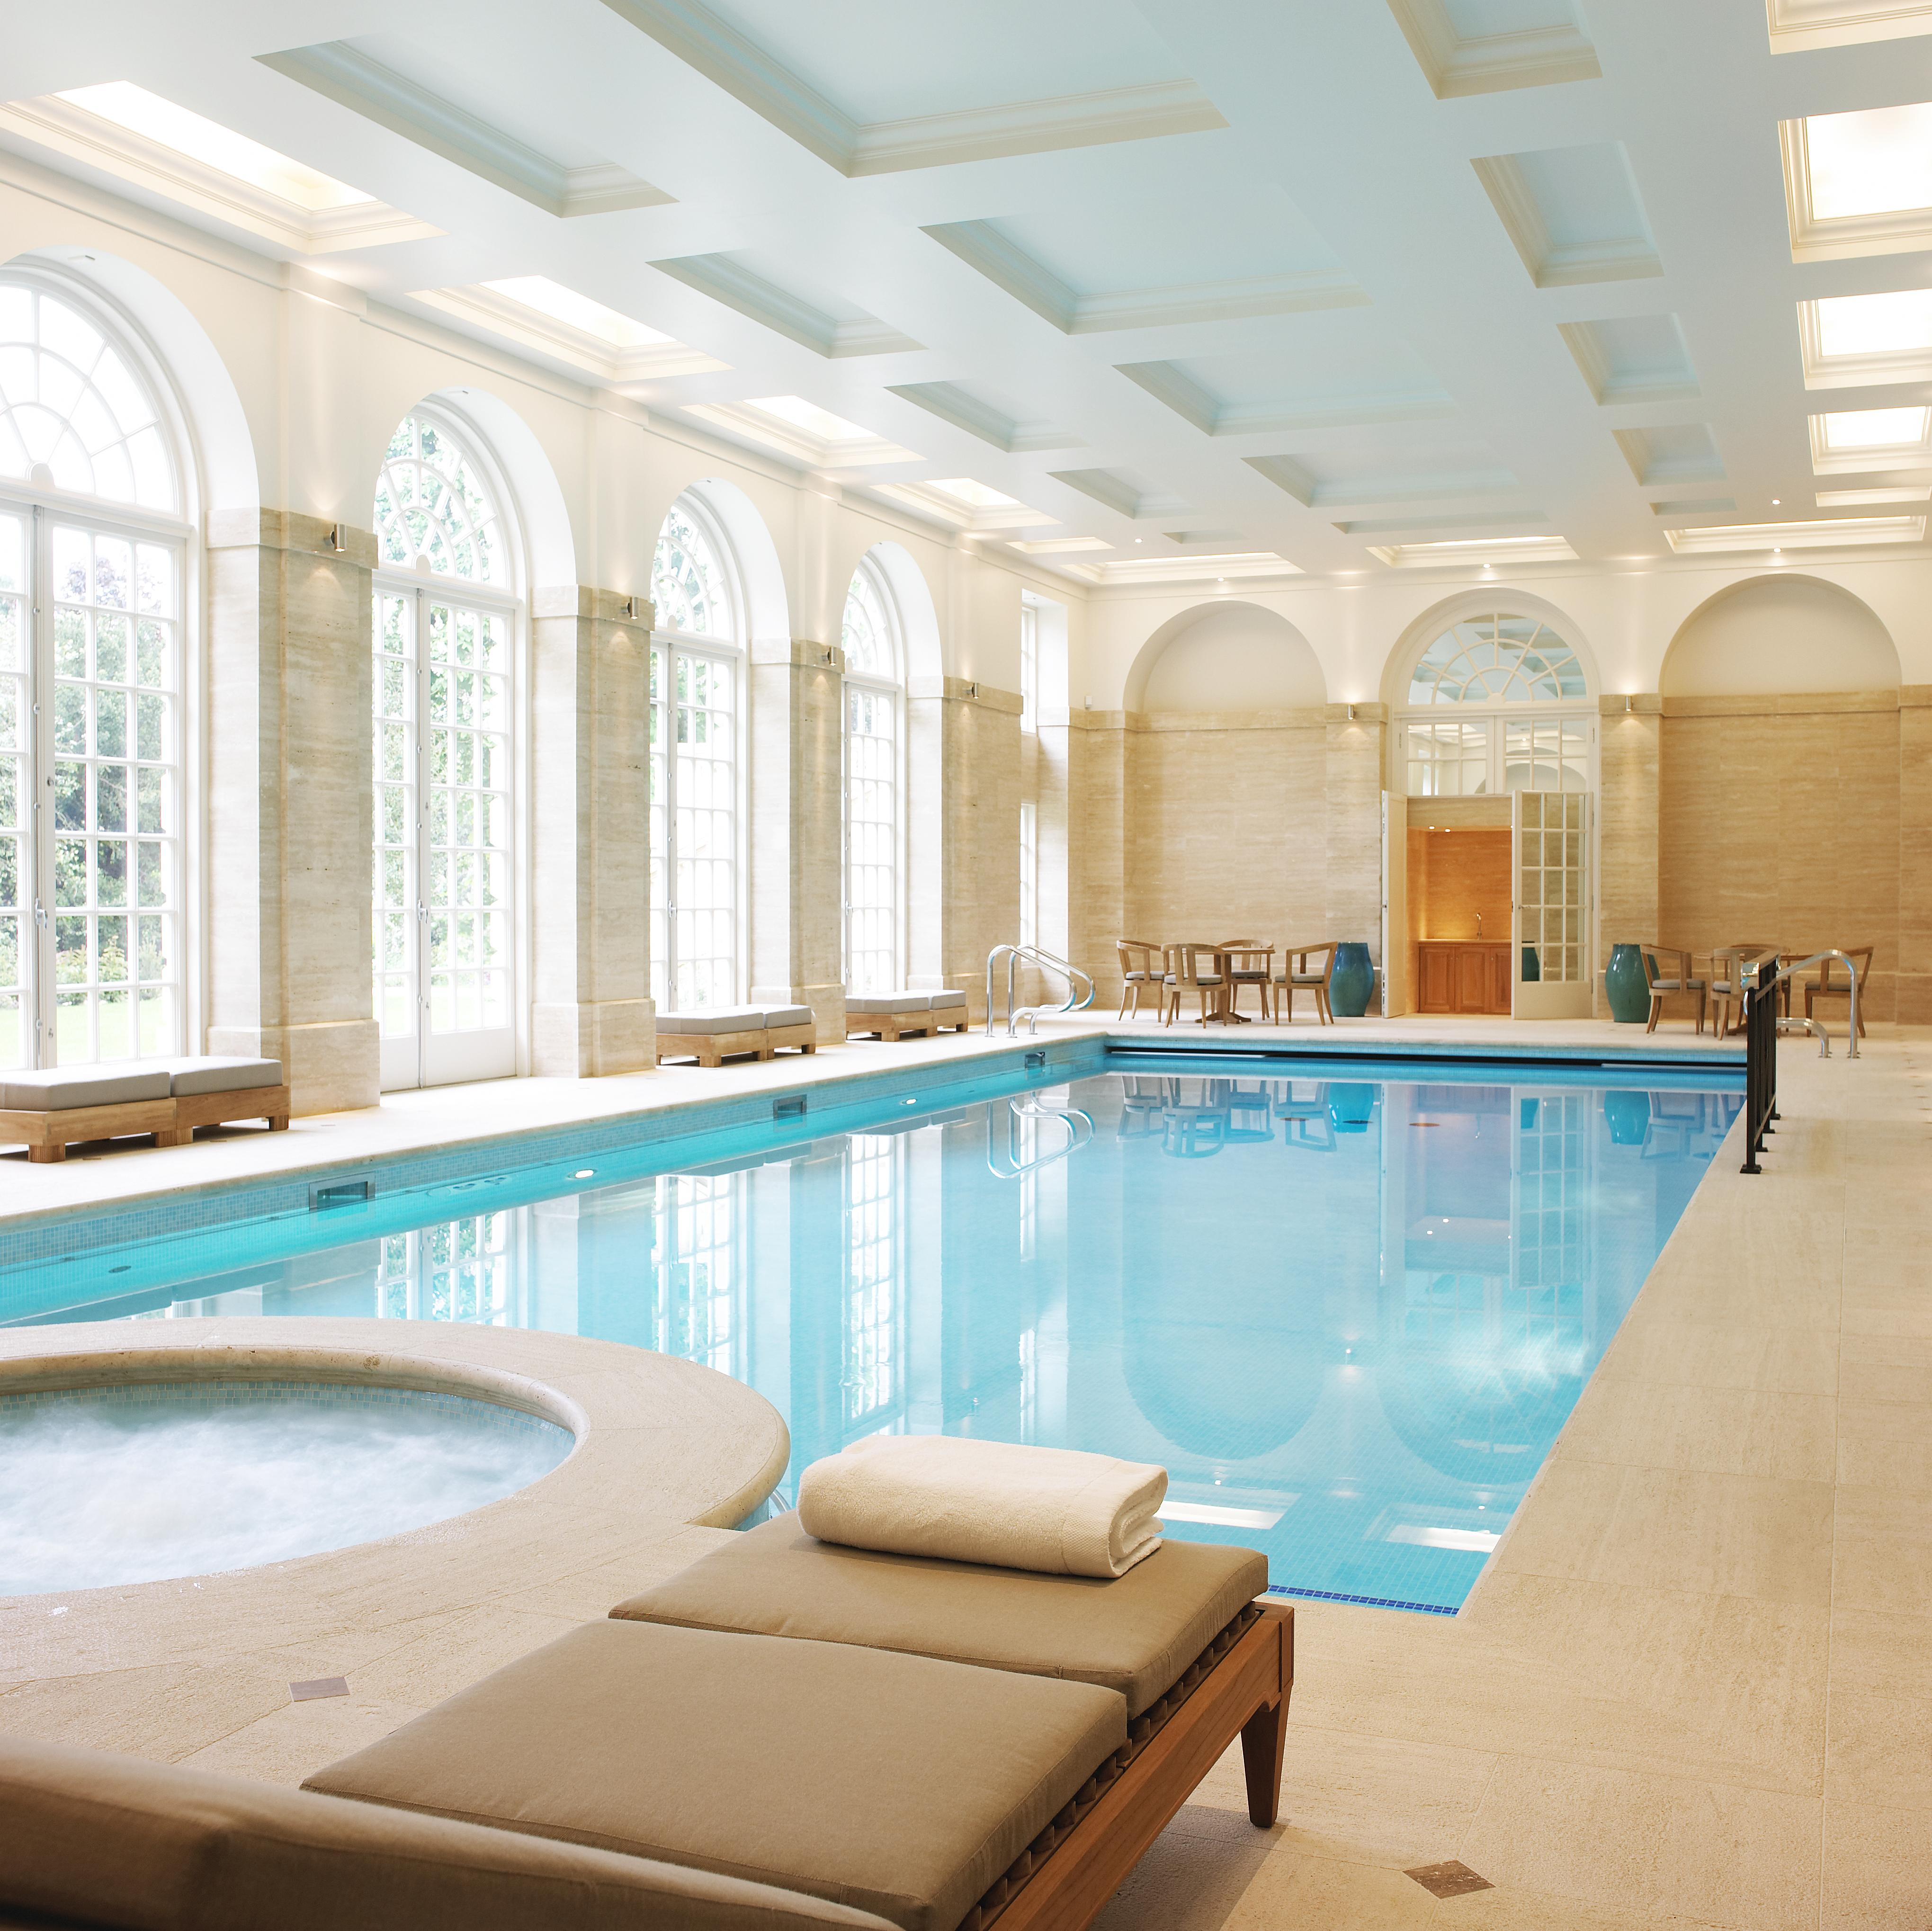 Royal touch indoor swimming pool